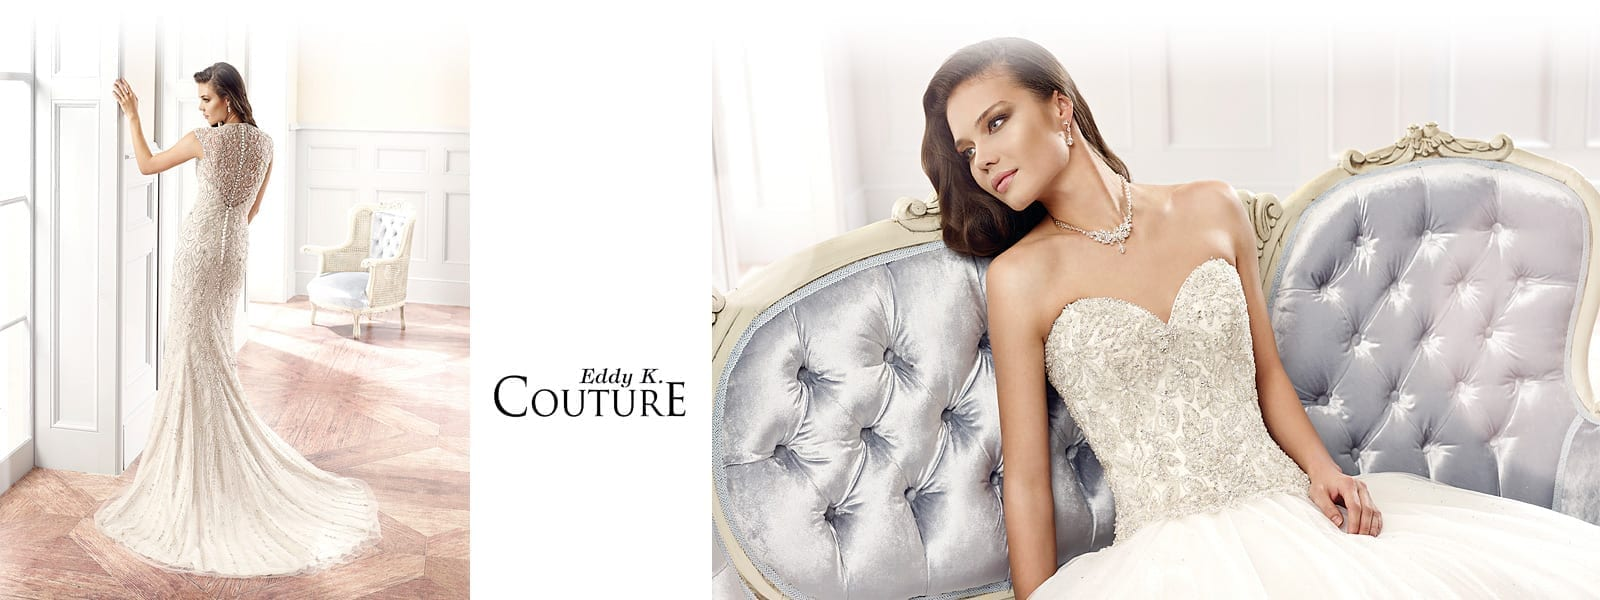 Couture-Header